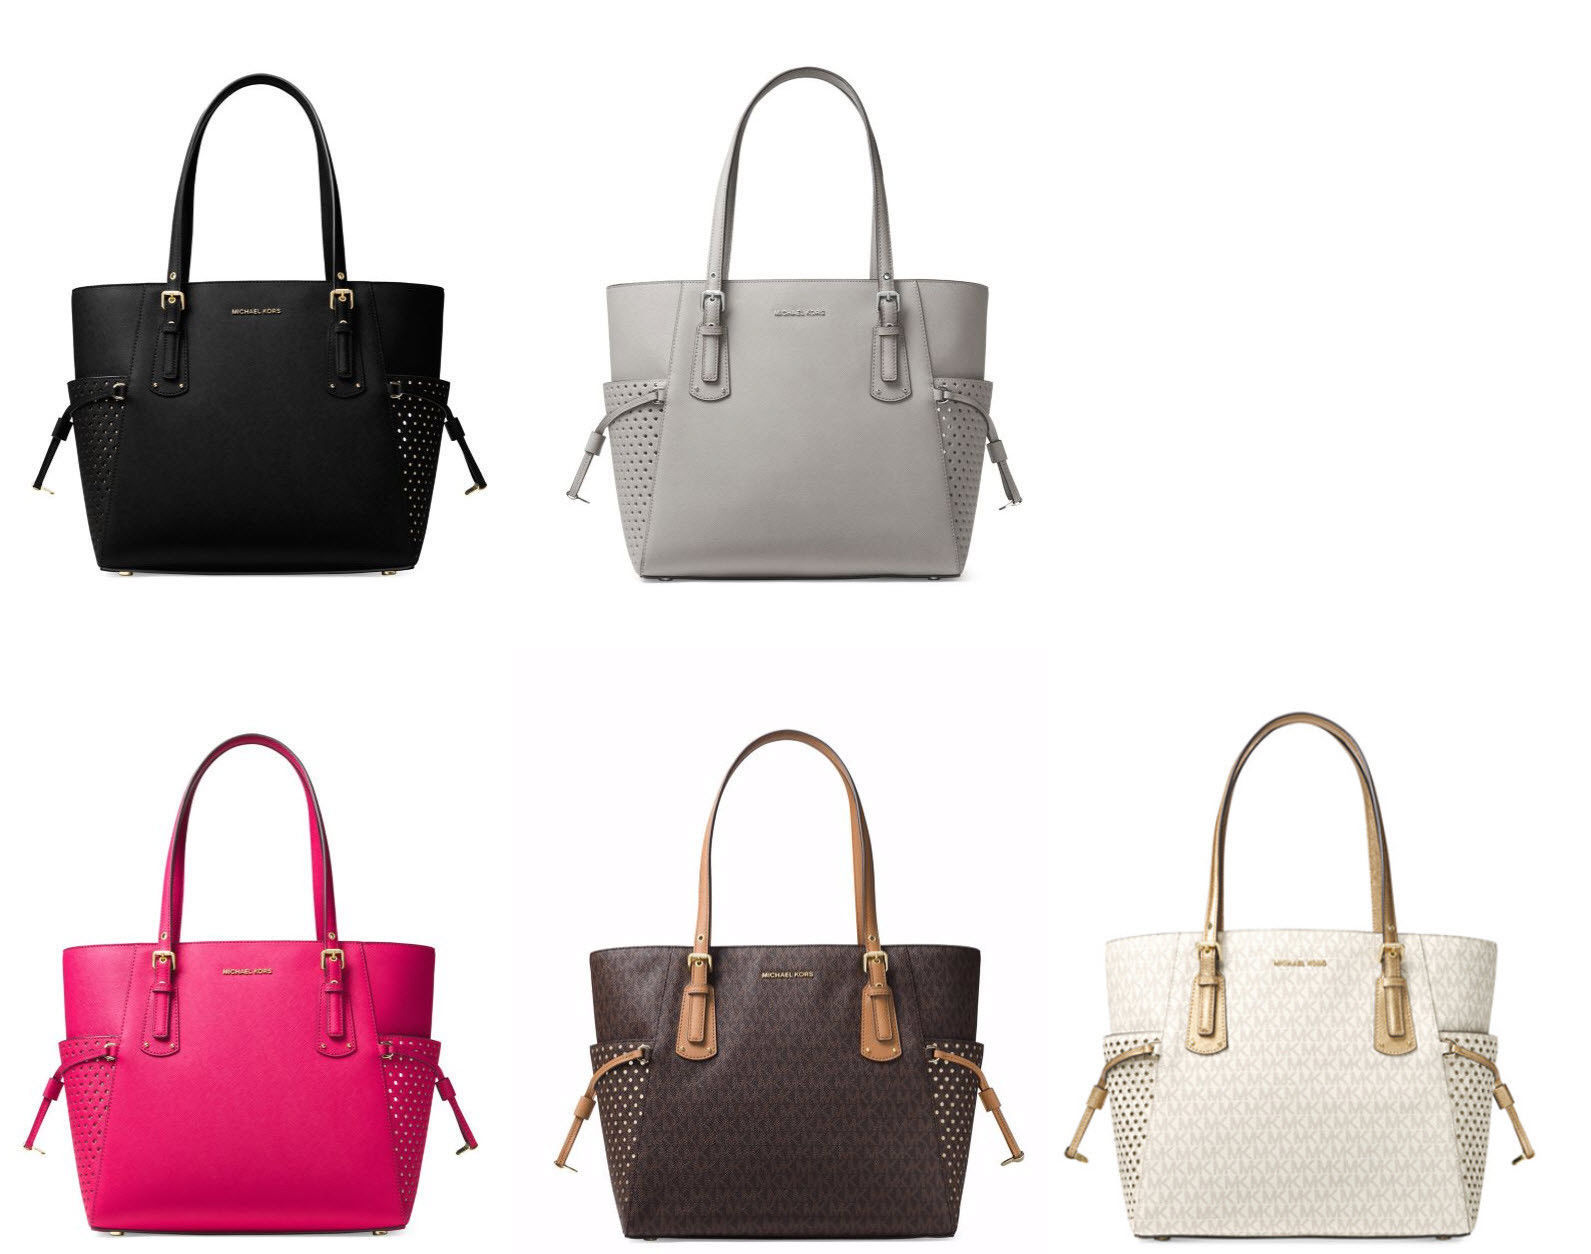 64fcad21c15d Michael Kors Voyager East West Tote and 50 similar items